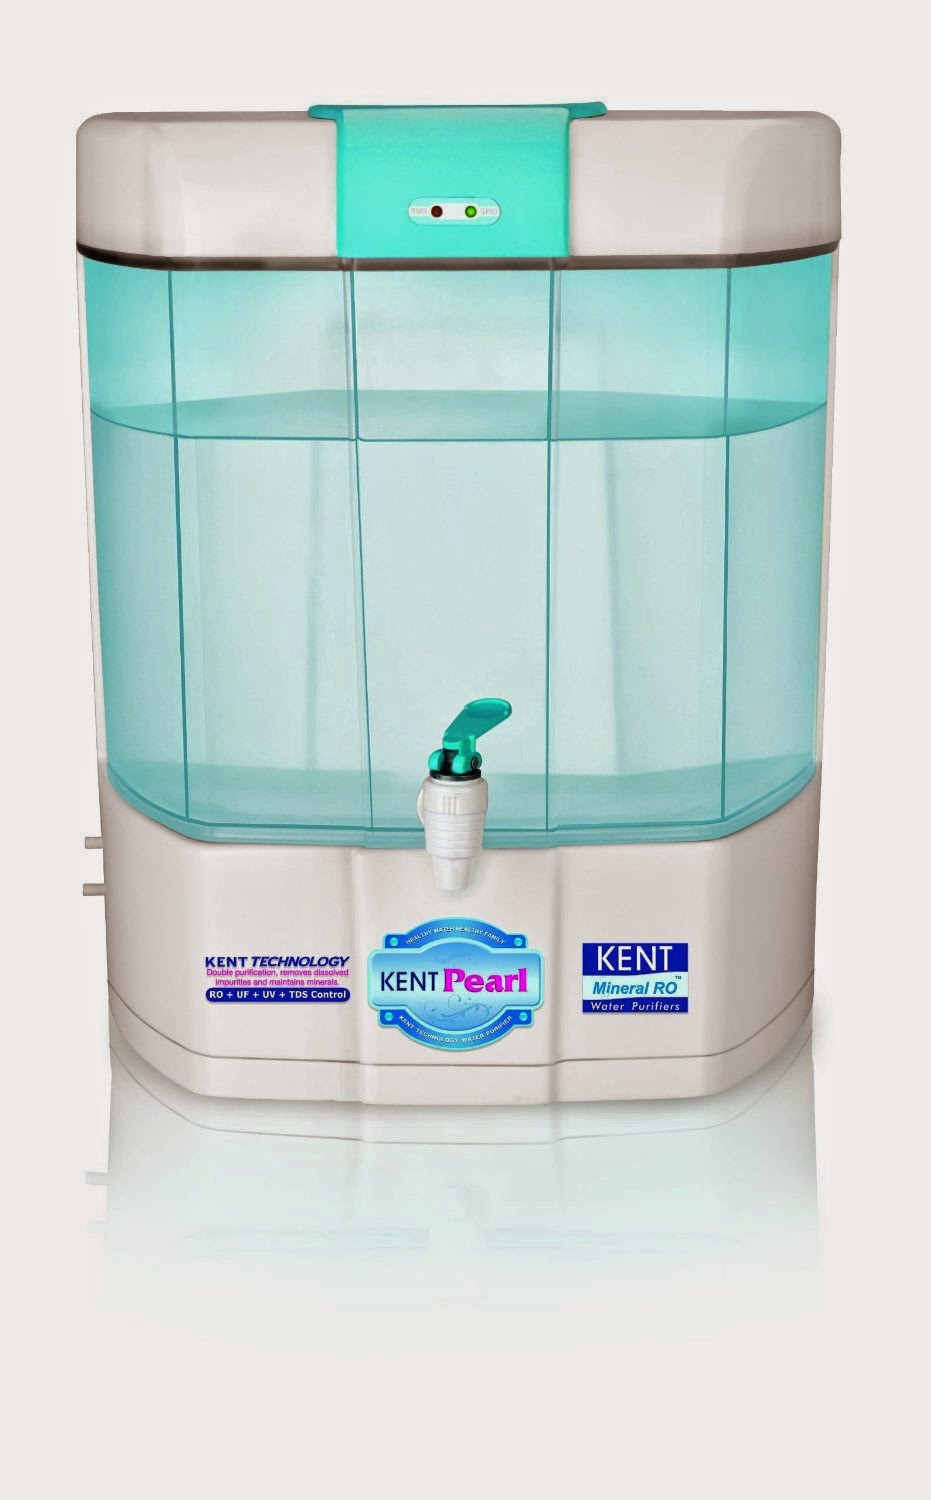 744c31abe7d Ideaz   Kent Pearl 8-Litre Mineral RO+UV Water Purifier review